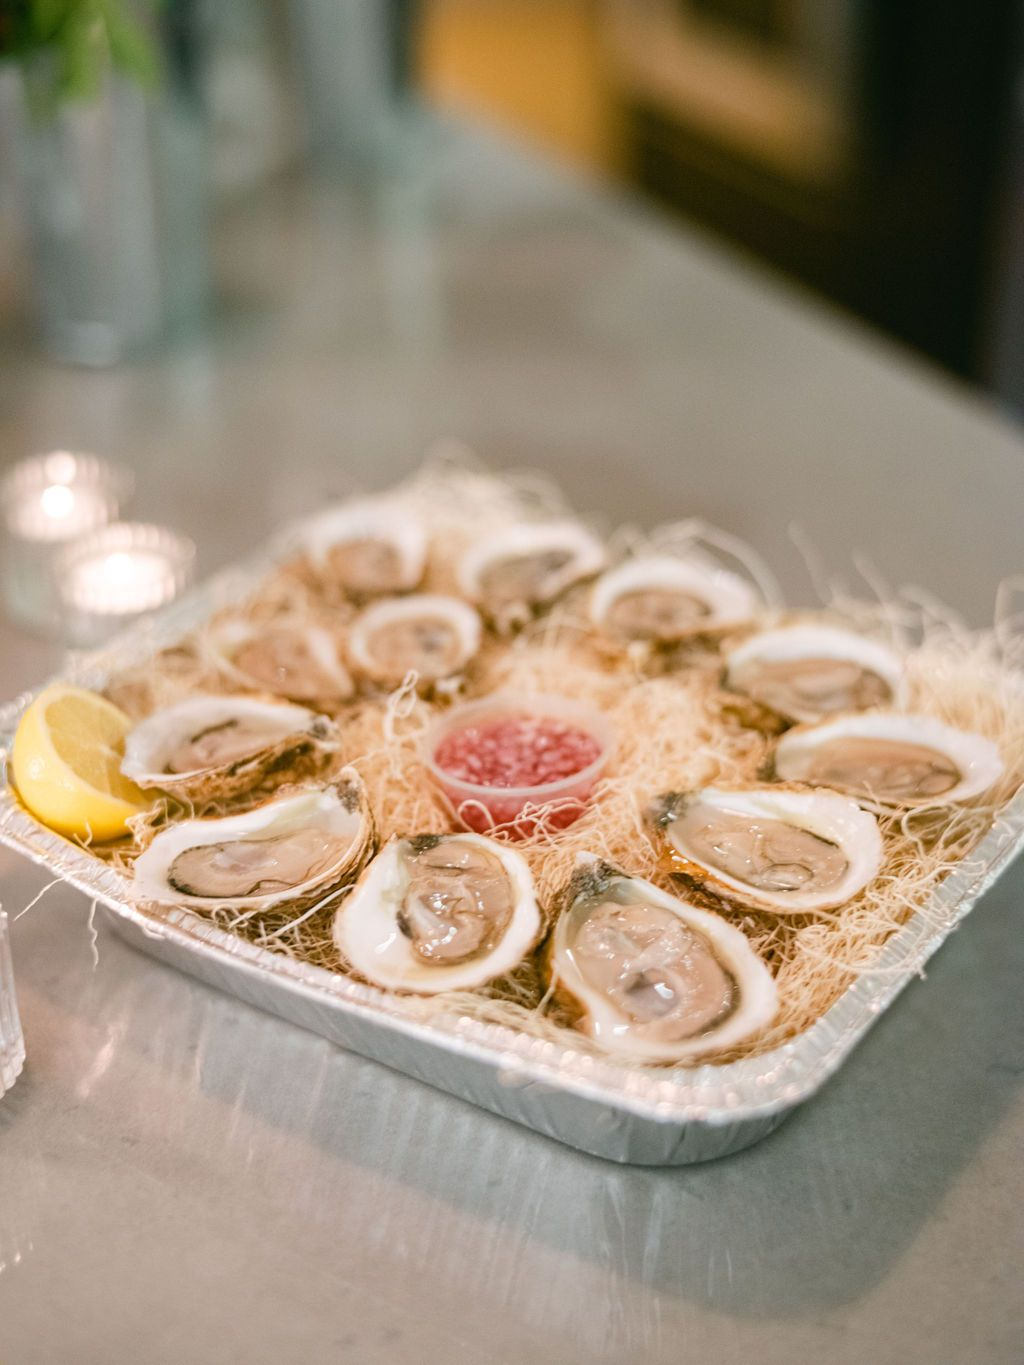 Shucked Oysters in a tray